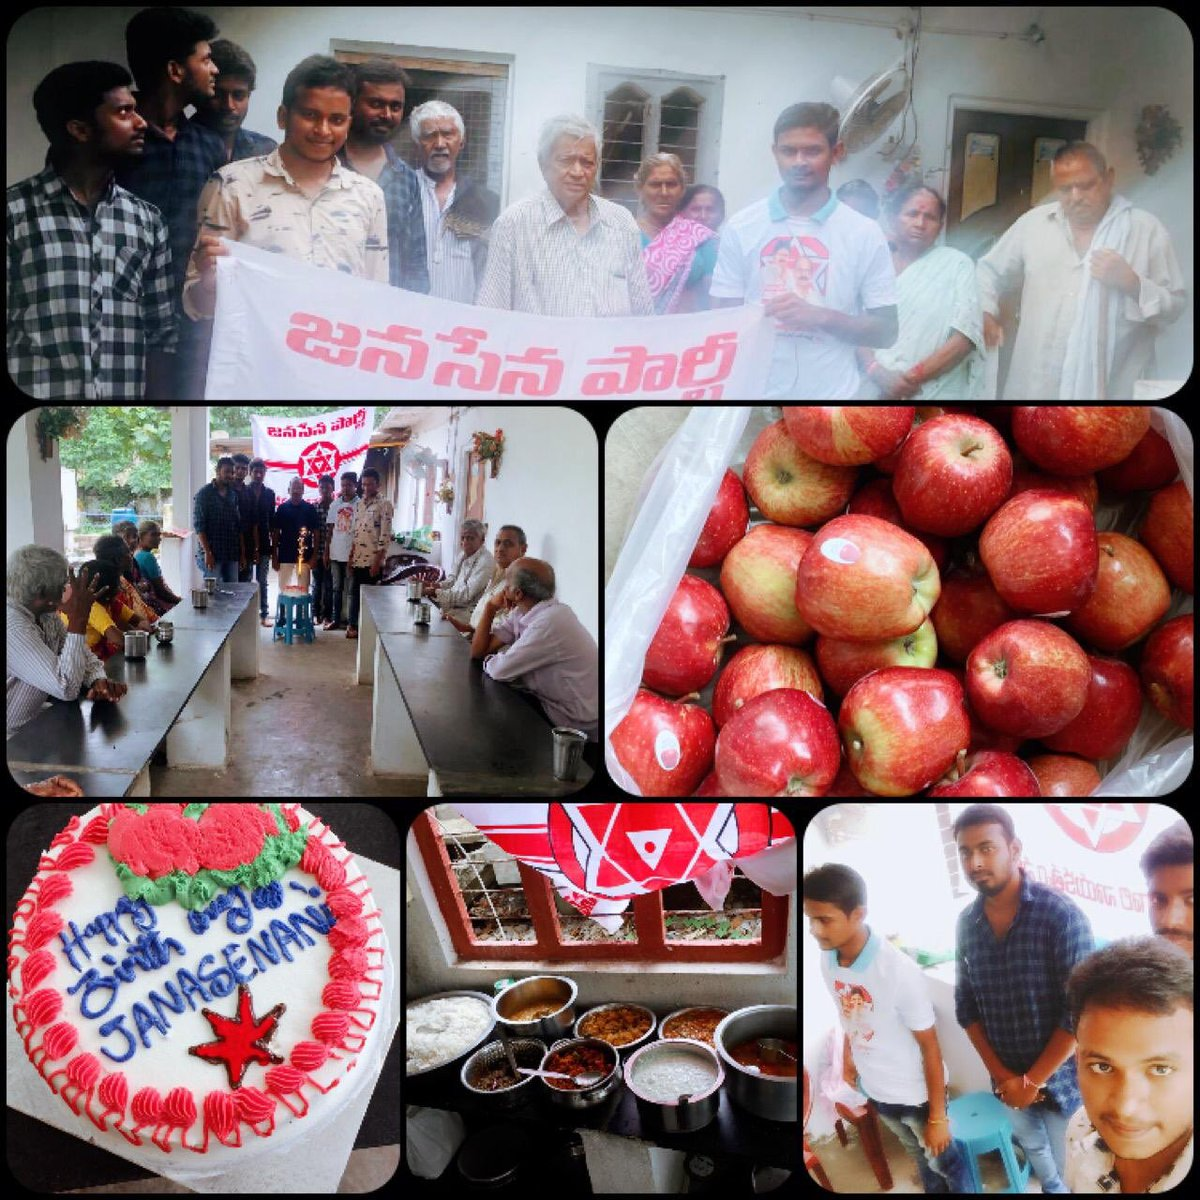 Fruits Donation & Cake Cutting At A Old Age Home Near Magallu Village  #HappyBirthdayPawanKalyan <br>http://pic.twitter.com/U6120QCCXC